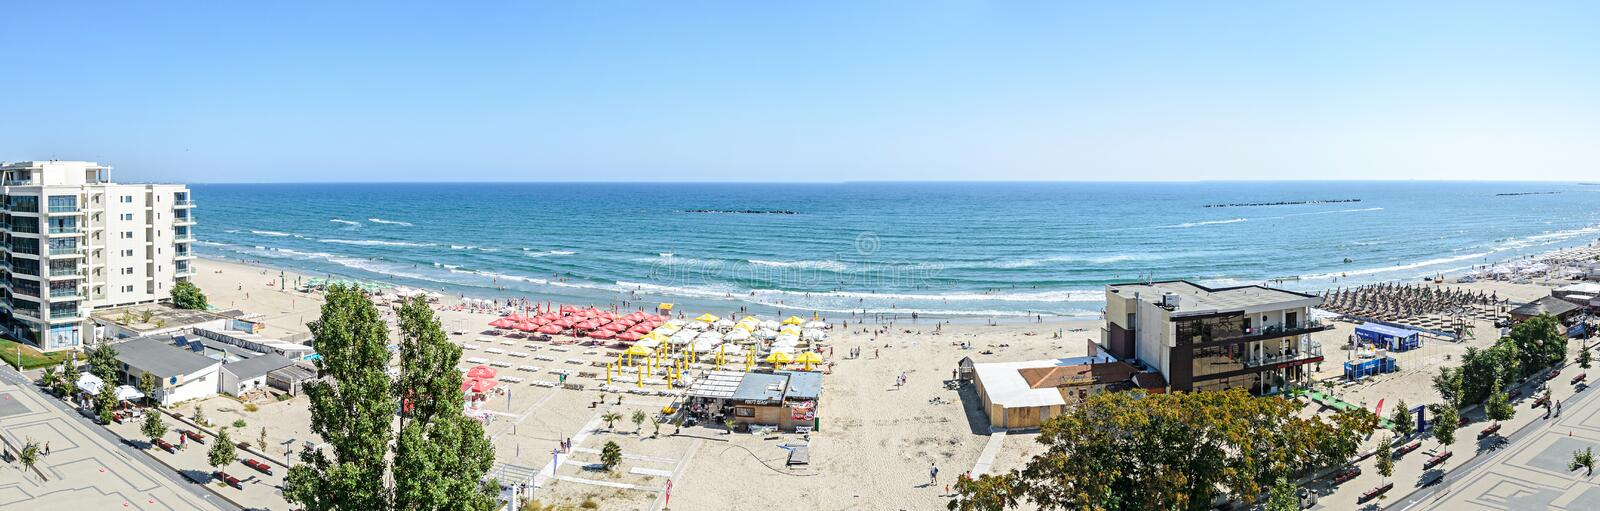 Beach of Black Sea with golden sands, sun umbrellas, sunbeds, blue clear water, bars and hotels. stock photos